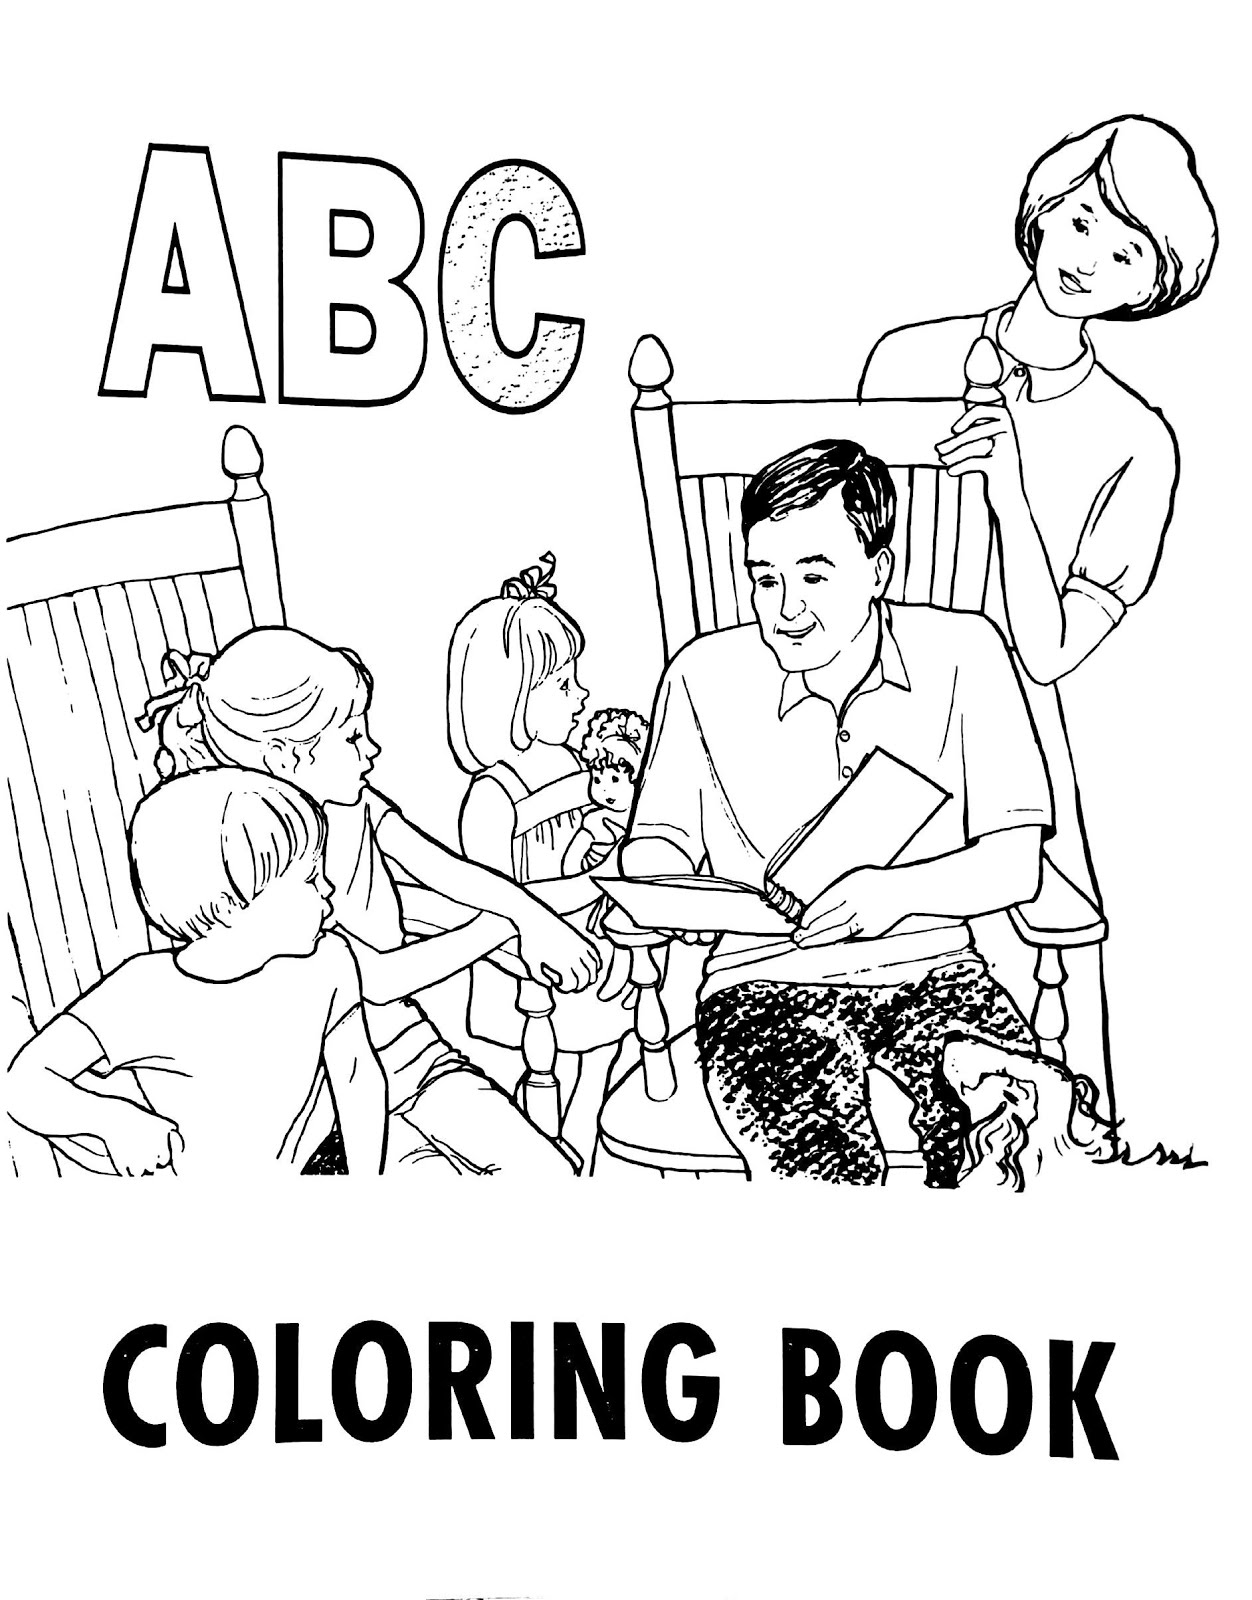 abc bible coloring pages - photo#20